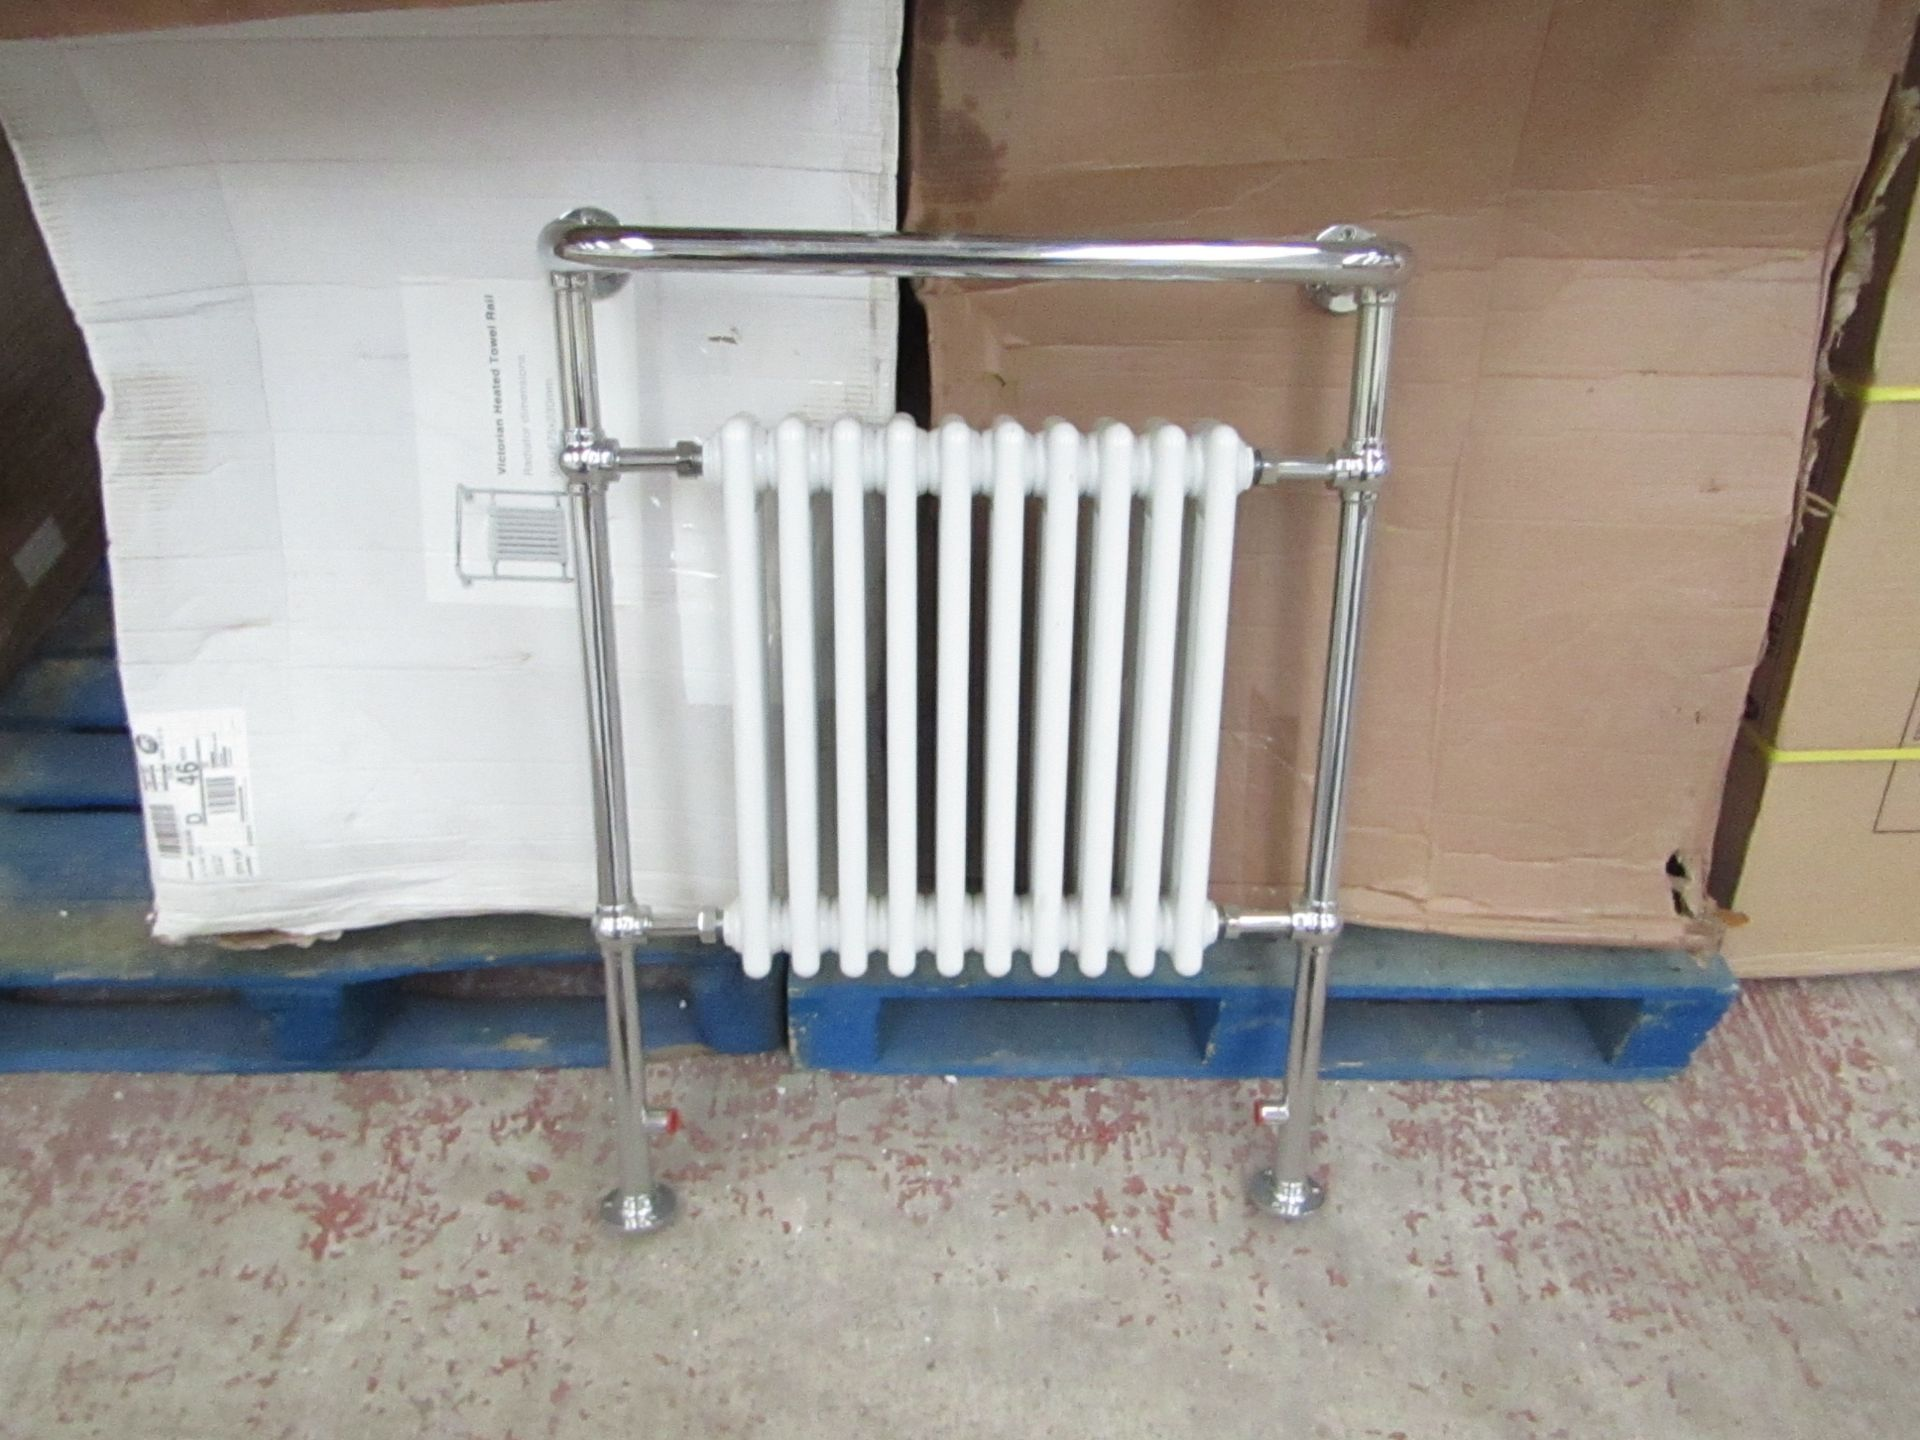 Lot 4 - Old London 10 section traditional radiator, unchecked and boxed, 70cm W x 93cm T x 24cm D